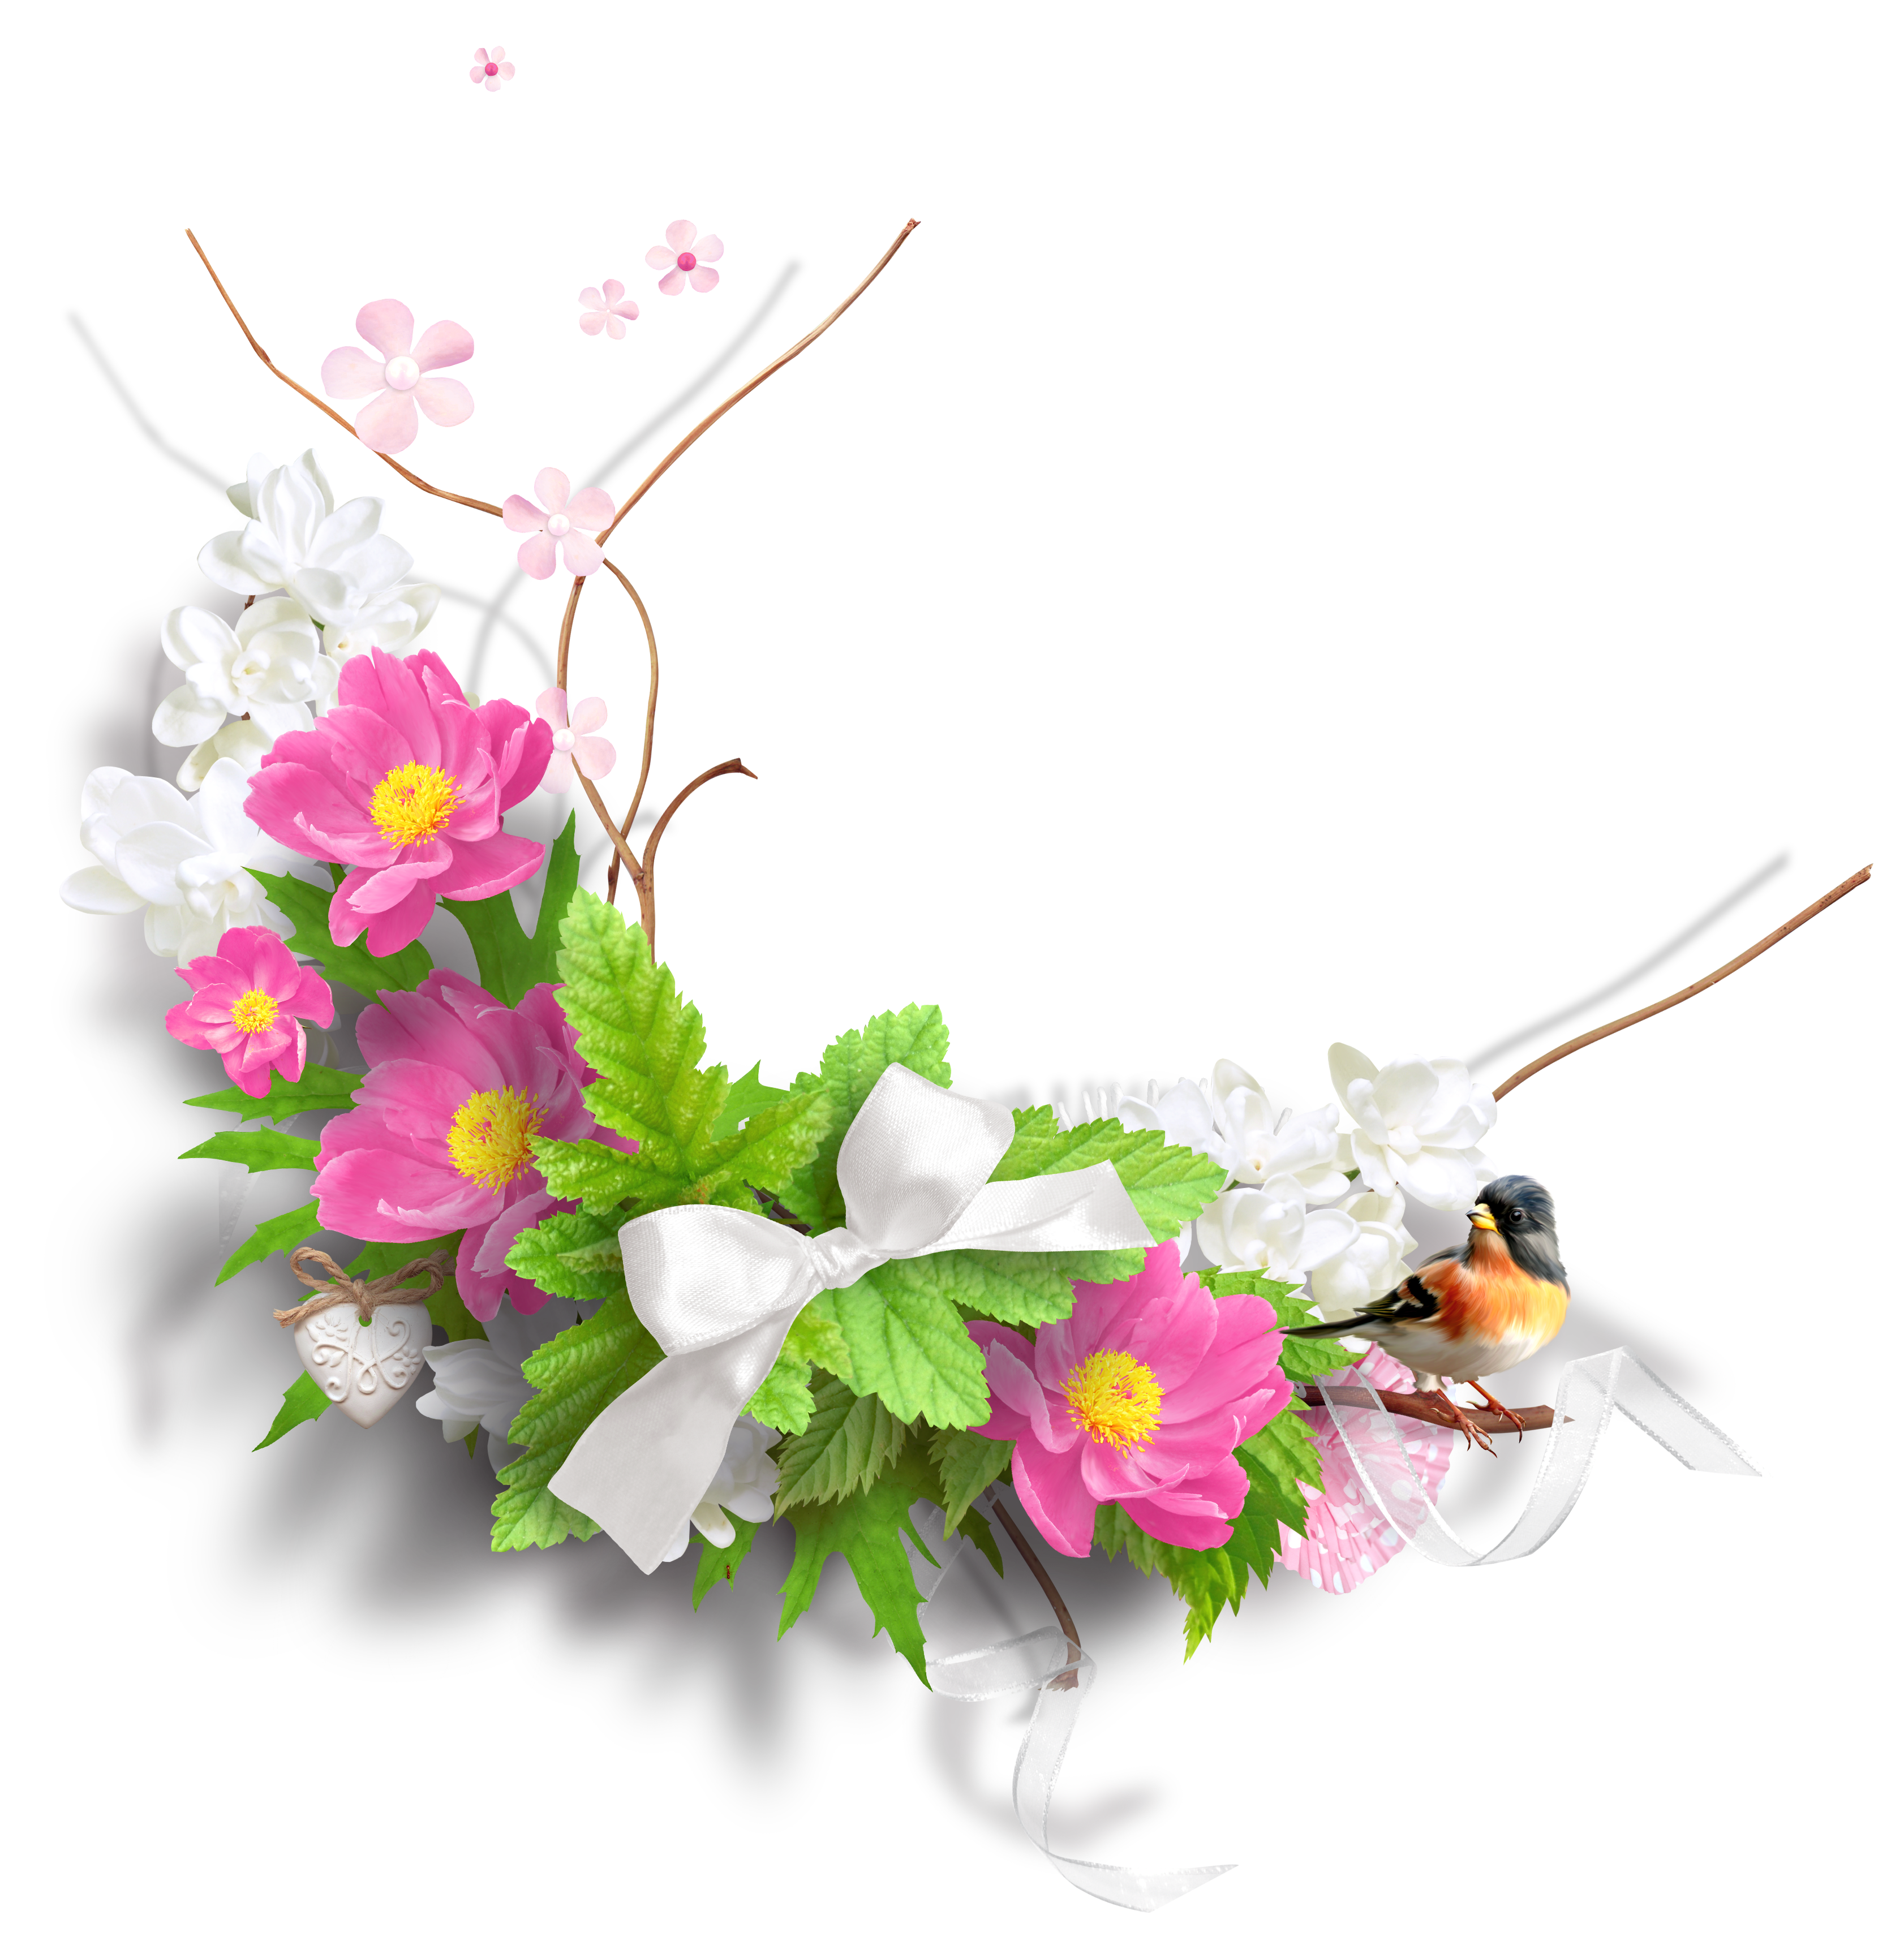 Fence clipart spring. Decoration png picture gallery